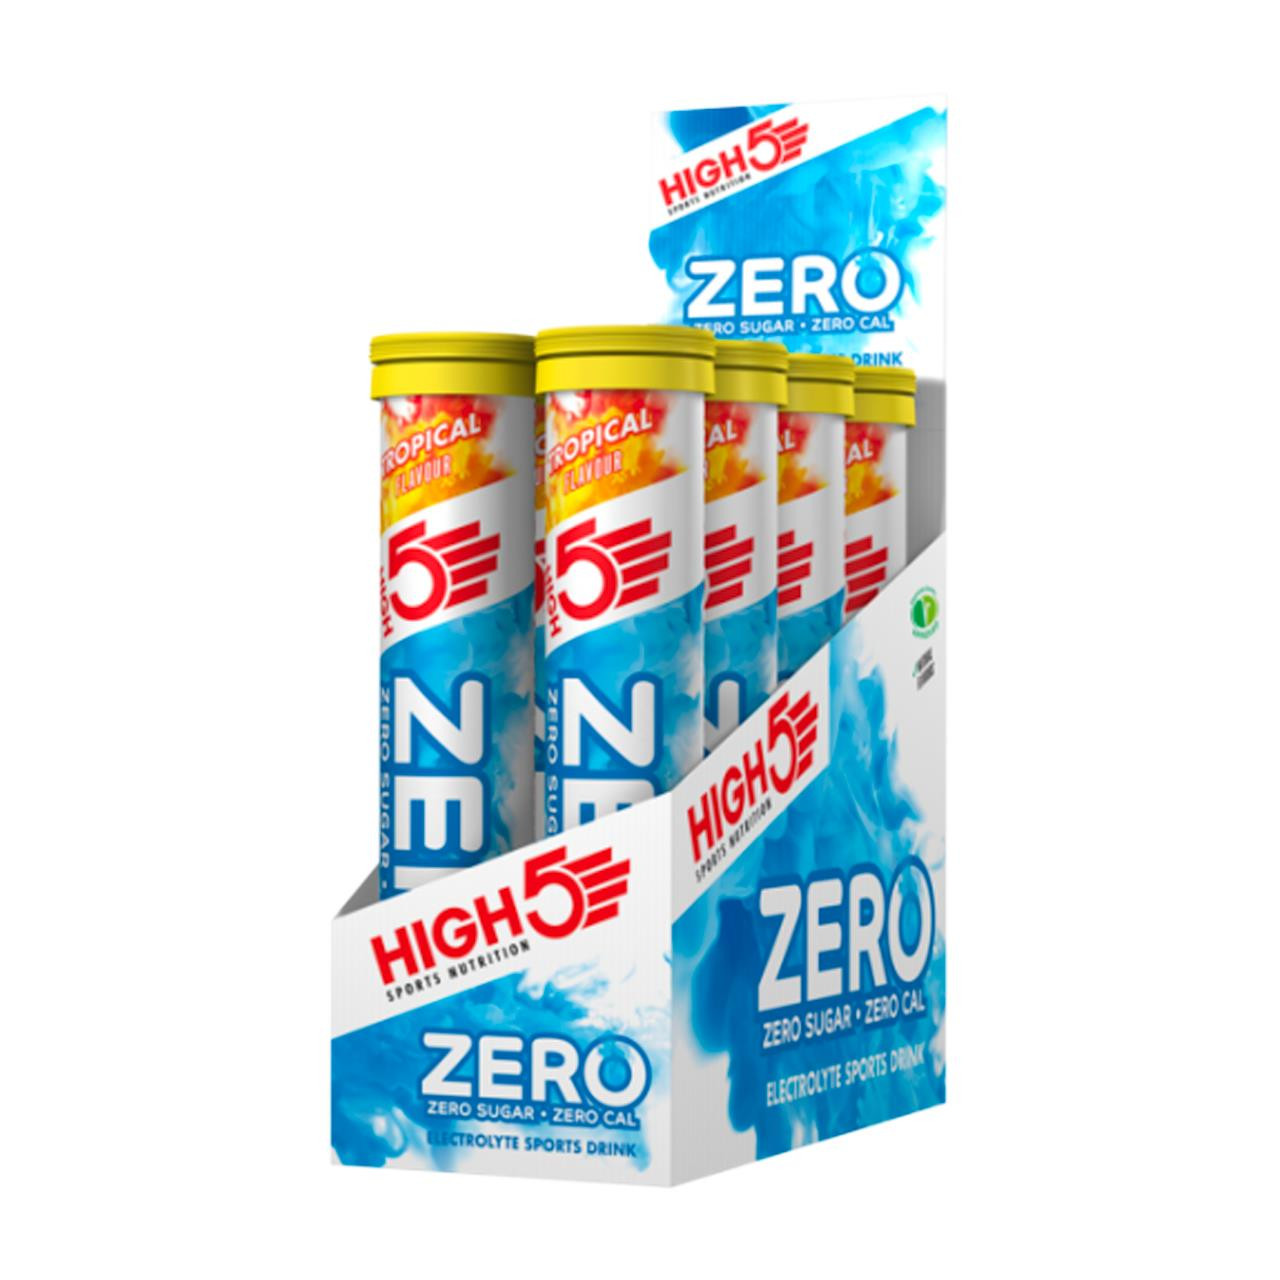 High5 Zero Tablets, 8 Pack (Tropical)